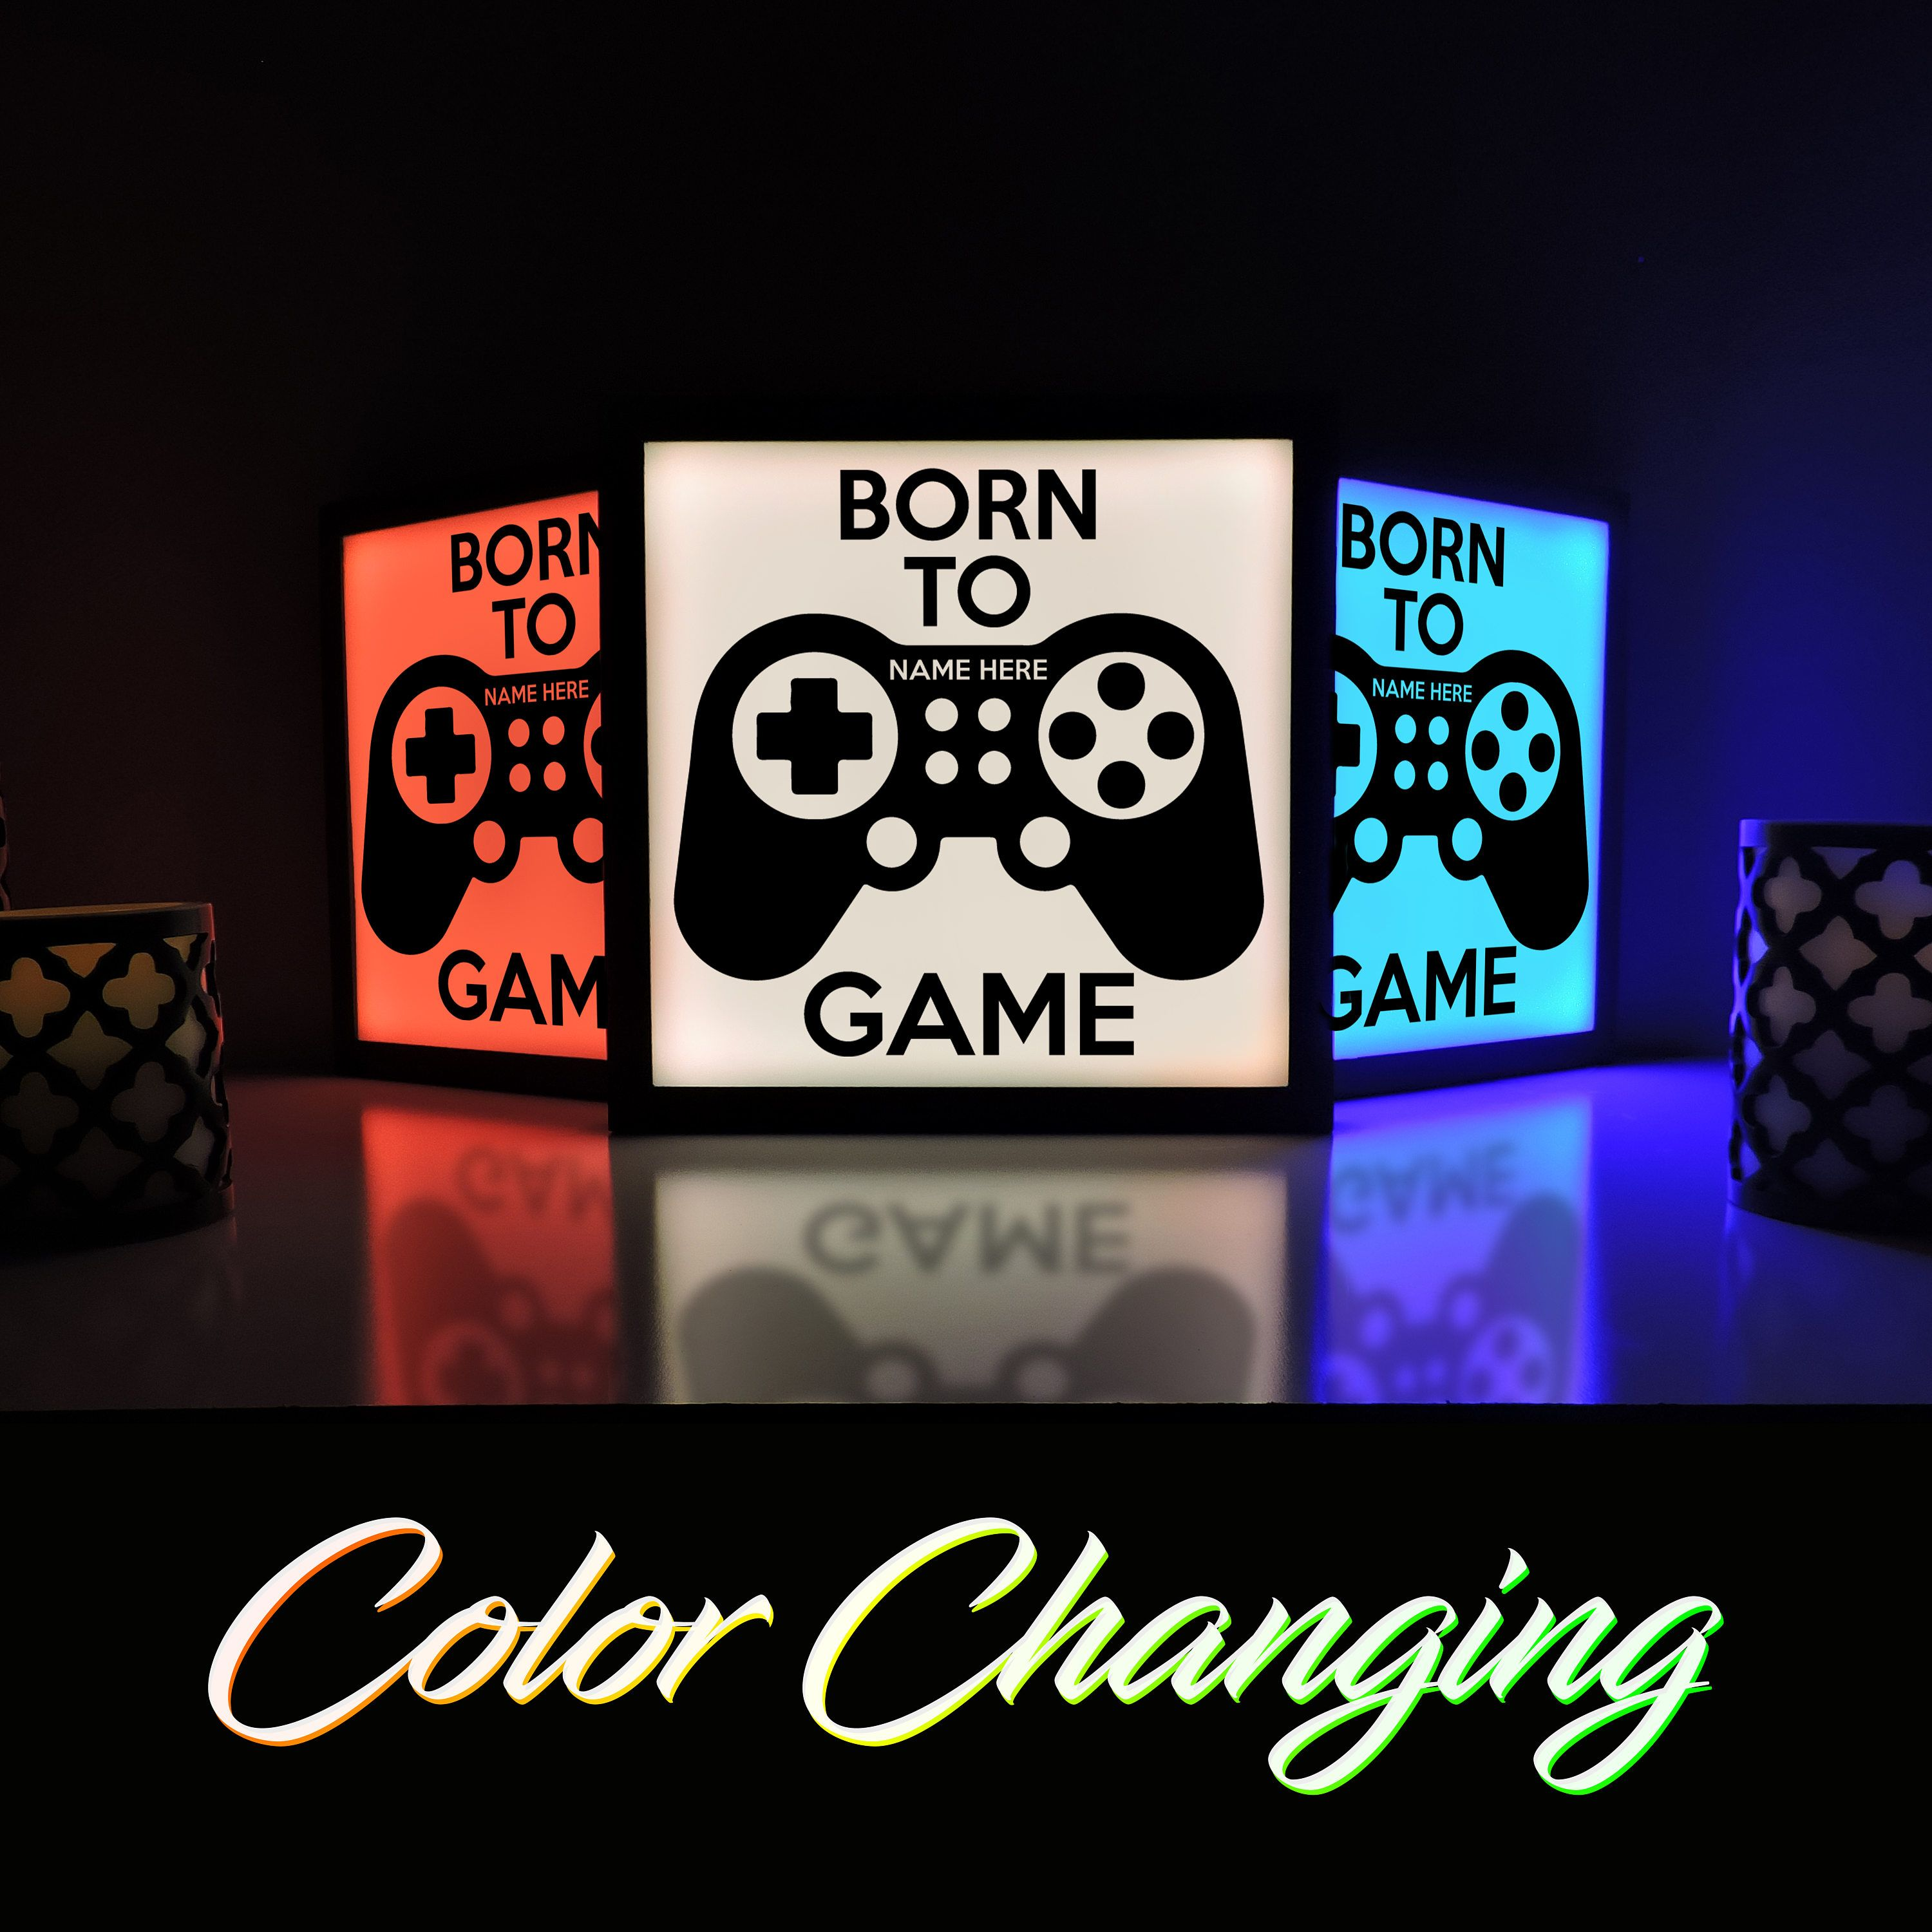 Born To Game Video Game Decor Gaming Light Video Game Sign